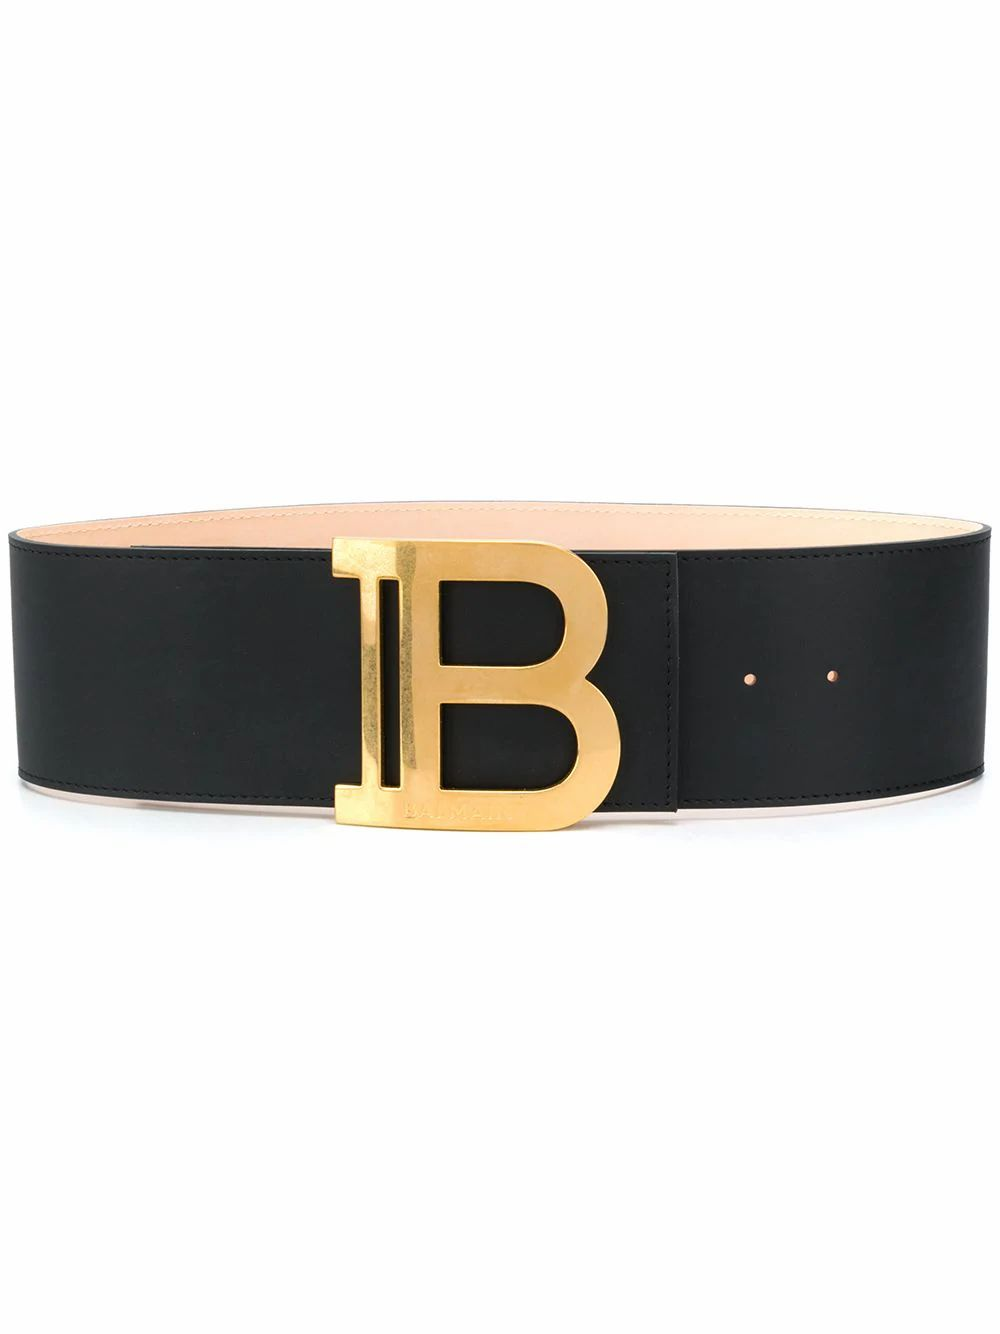 Balmain BALMAIN WOMEN'S BLACK LEATHER BELT